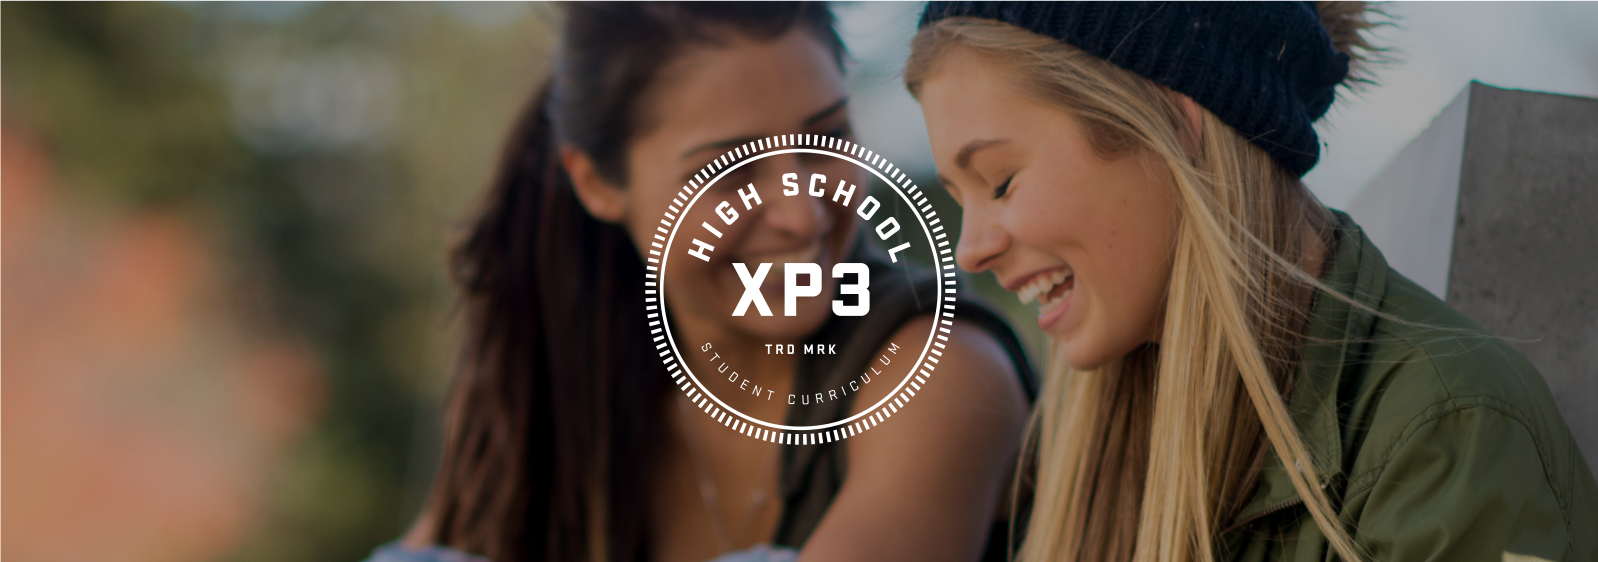 XP3 High School Curriculum logo, with two girls laughing in the background